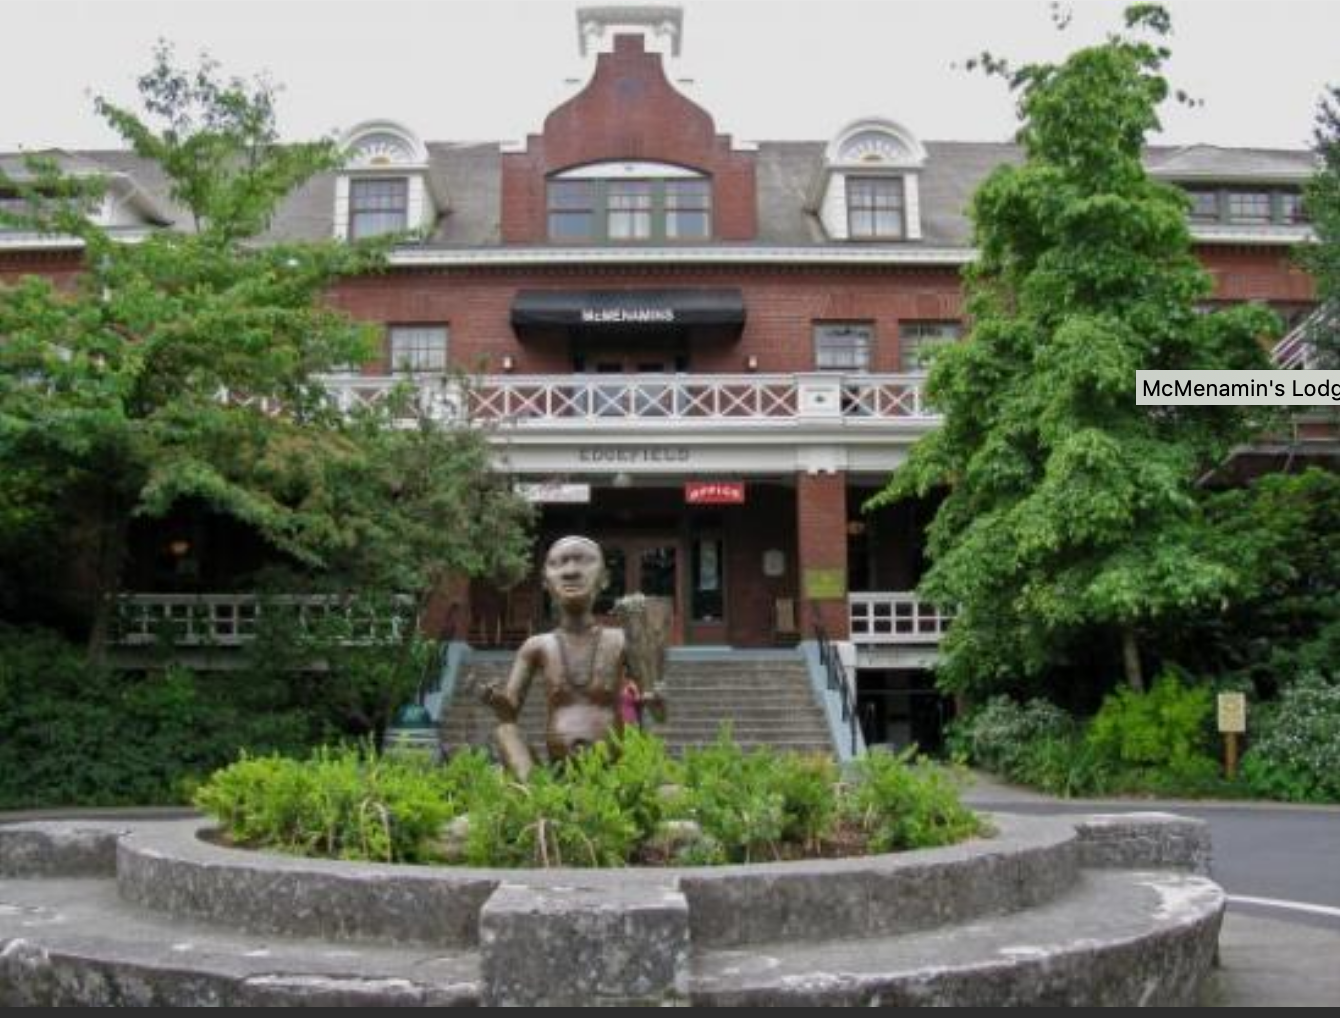 THE MANOR THAT ONCE HOUSED THE IMPOVERISHED AND NURSING HOME RESIDENTS IS NOW A 100-ROOM HOTEL AT MCMENAMIN'S EDGEFIELD, A DESTINATION RESORT NEAR PORTLAND, OREGON.